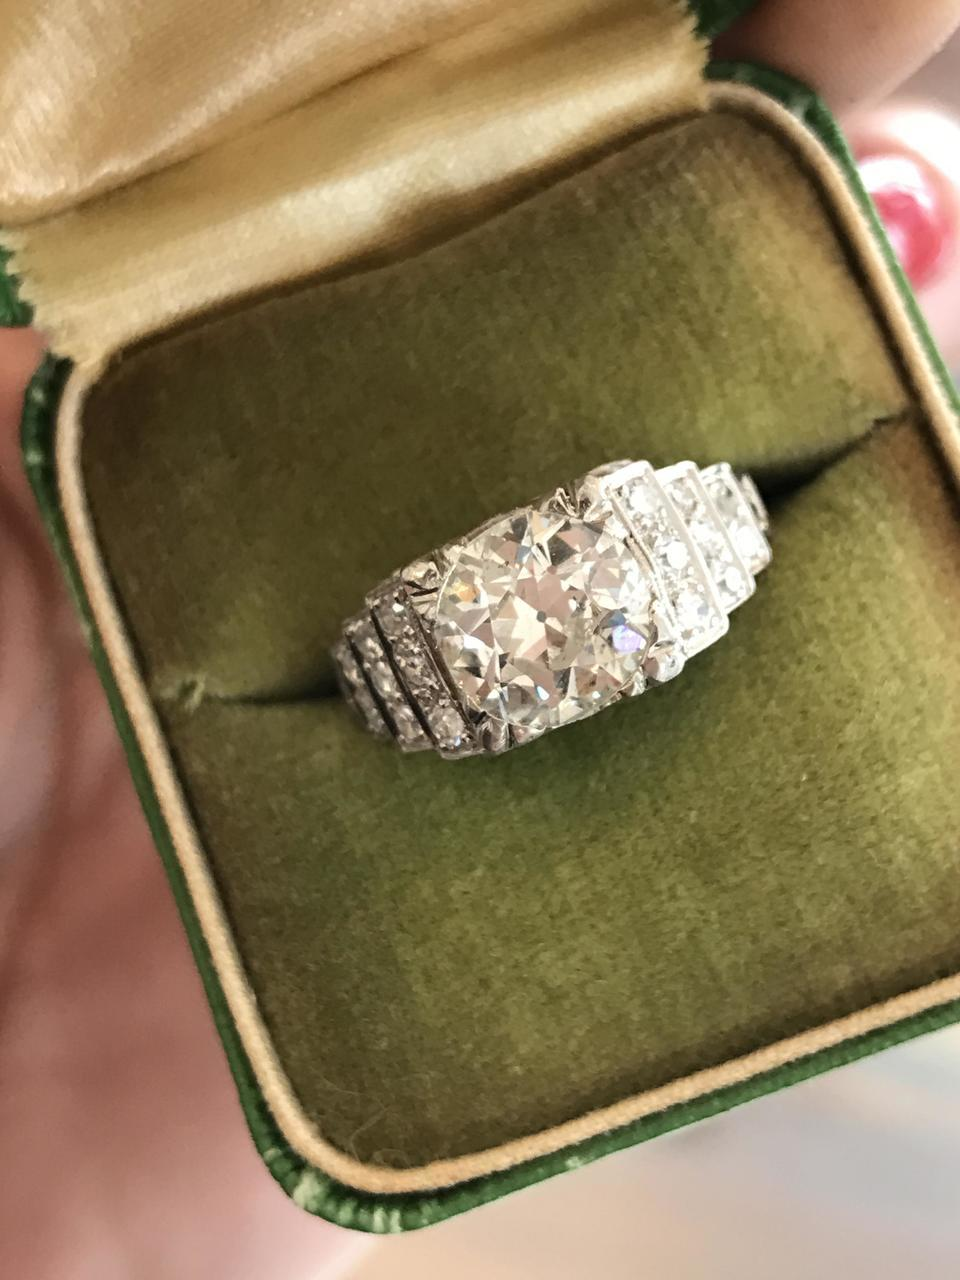 Antique Platinum Ring With A 2.15ct Diamond, Circa 1920